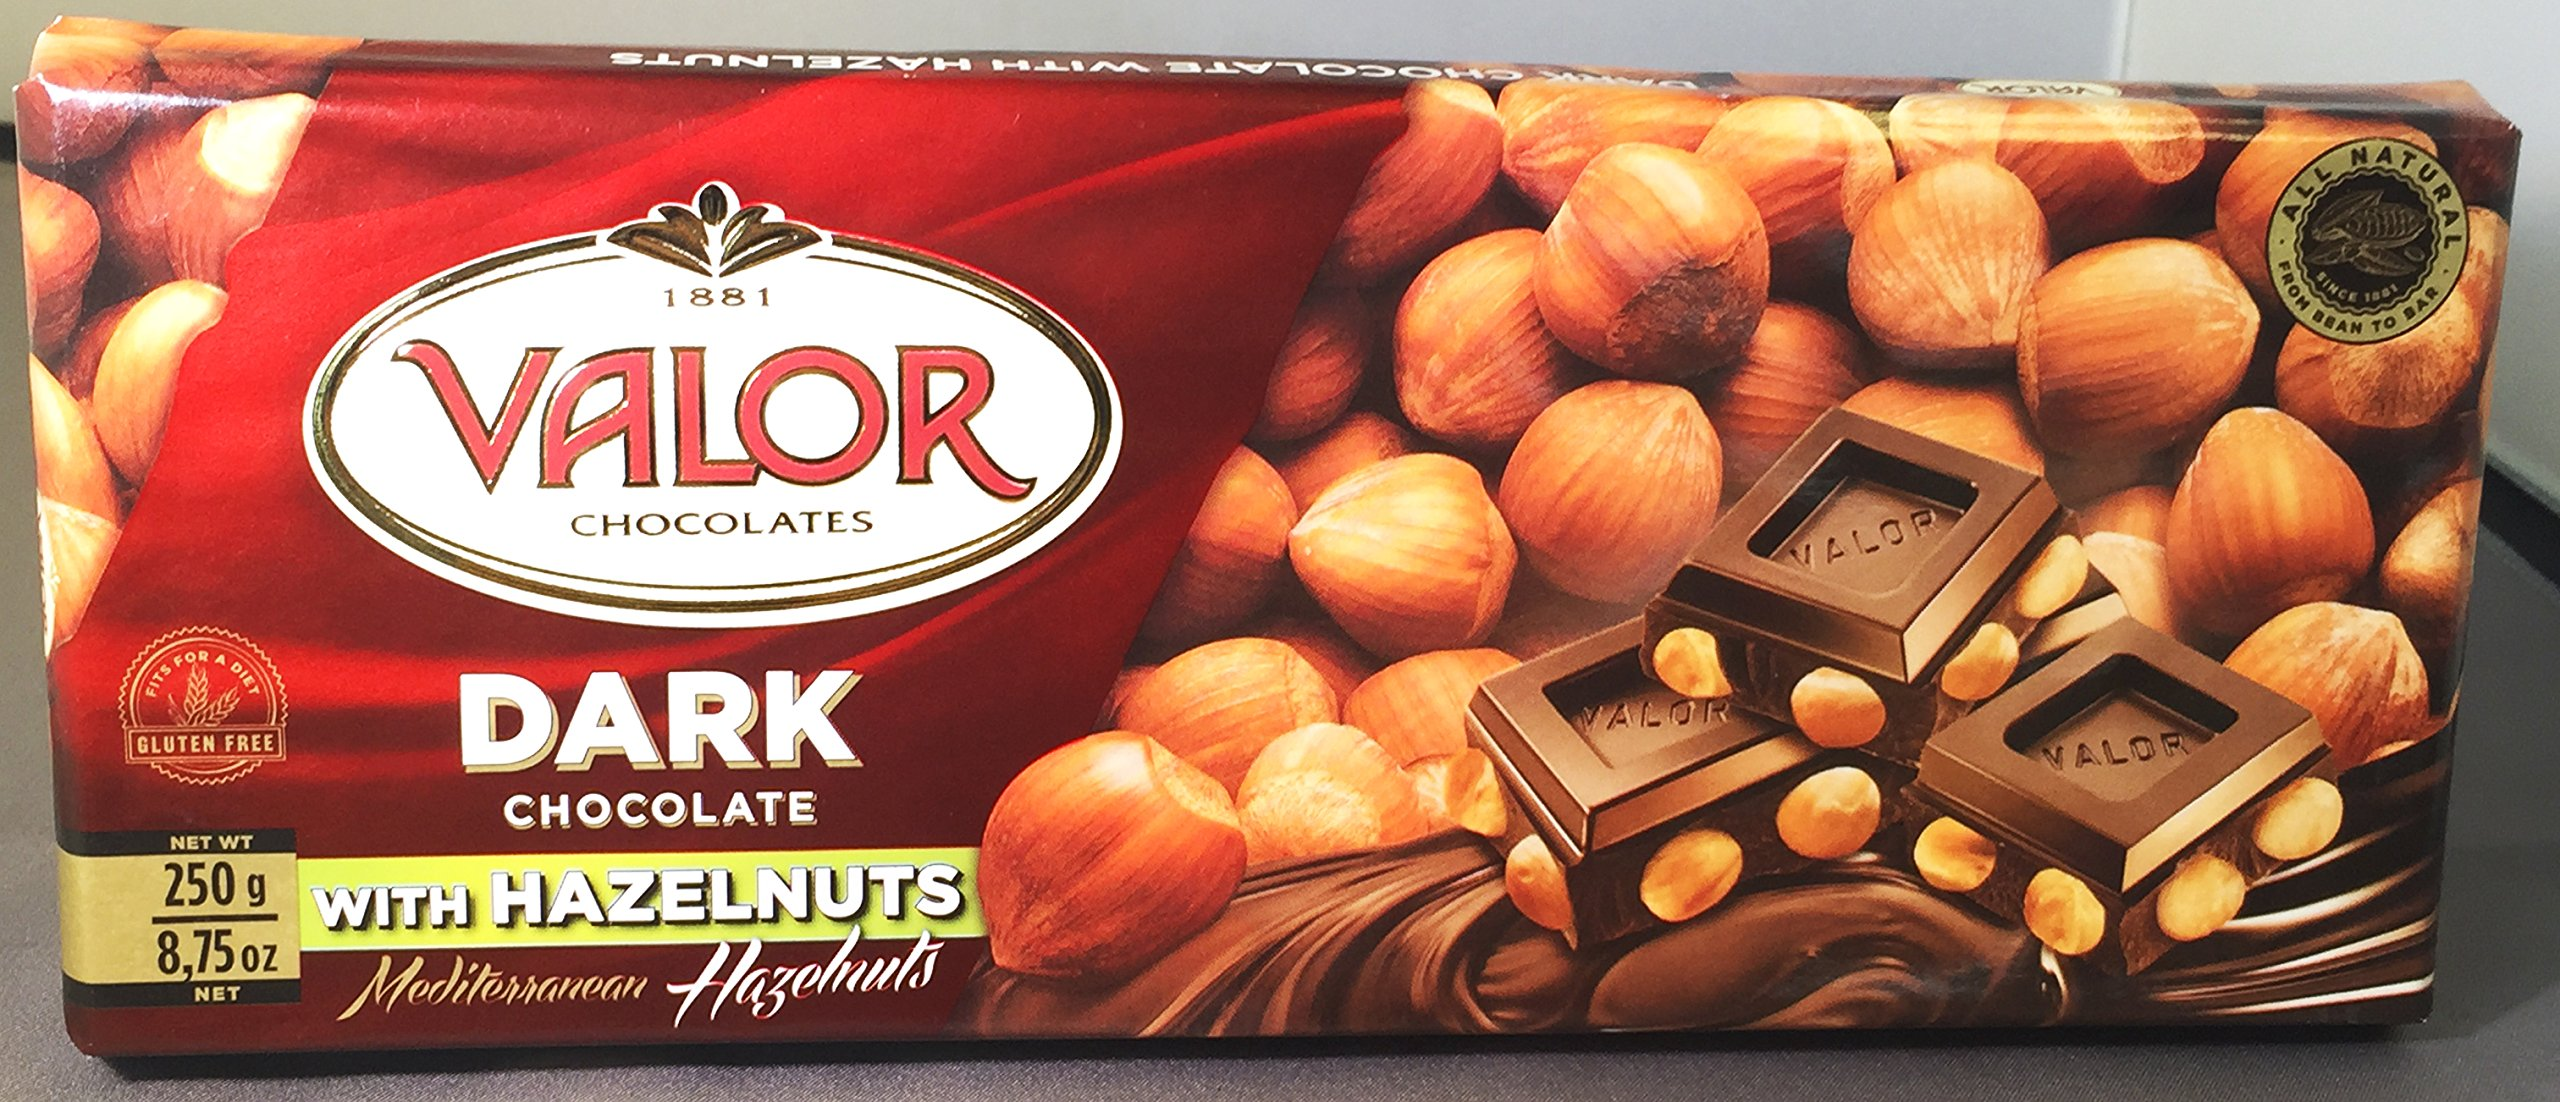 Amazon.com : Valor Dark Chocolate Bar 52% Cacao with Whole Hazelnuts (8.75 oz/250 g) : Candy And Chocolate Bars : Grocery & Gourmet Food